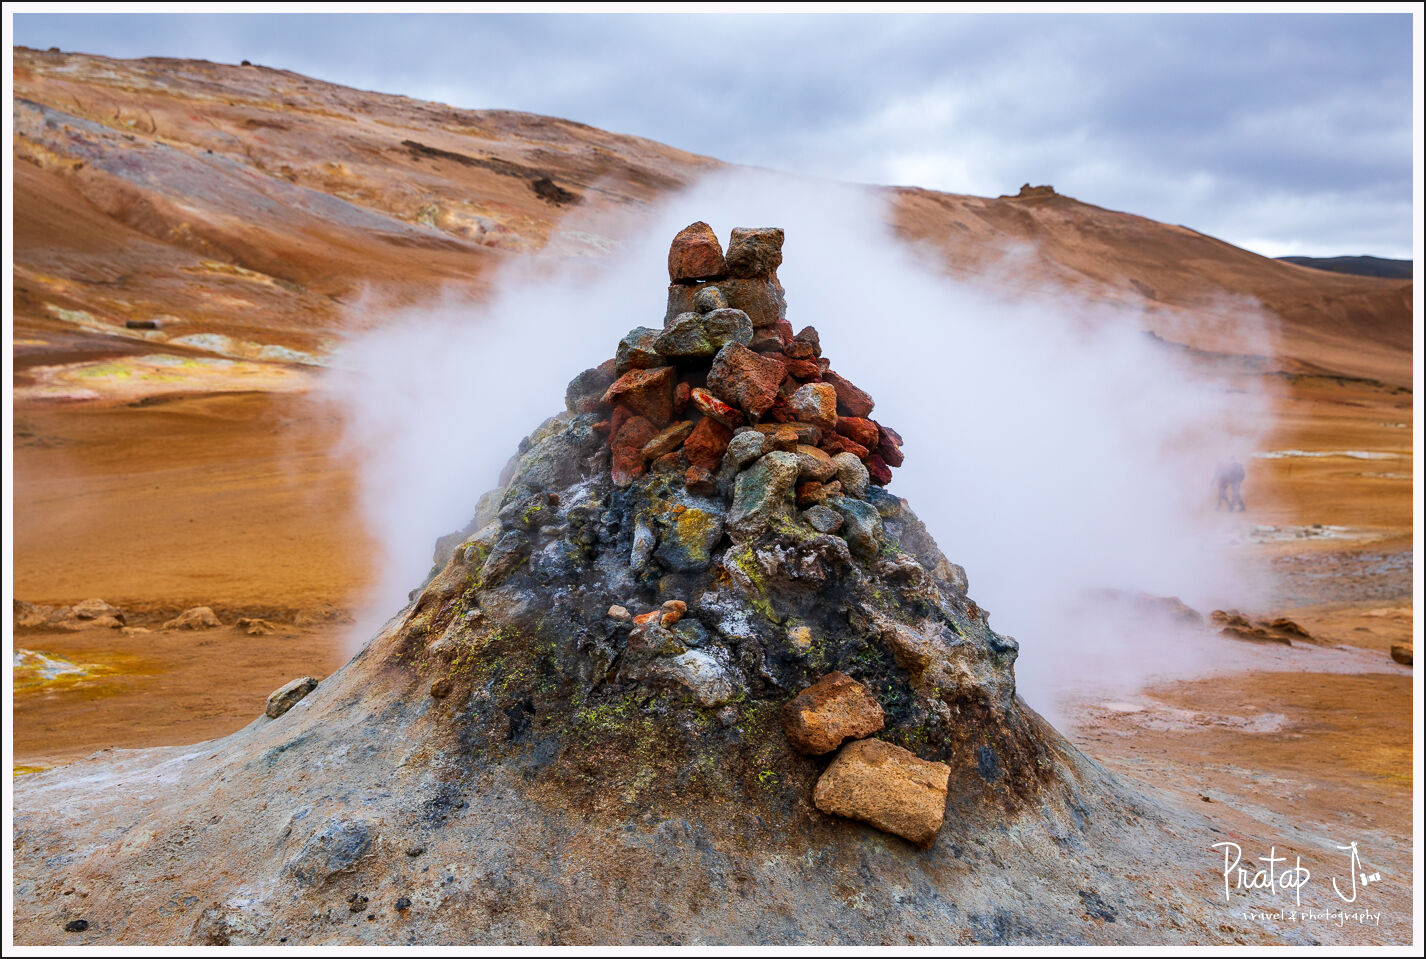 Sulfuric acid smoke coming from below the earth in Iceland